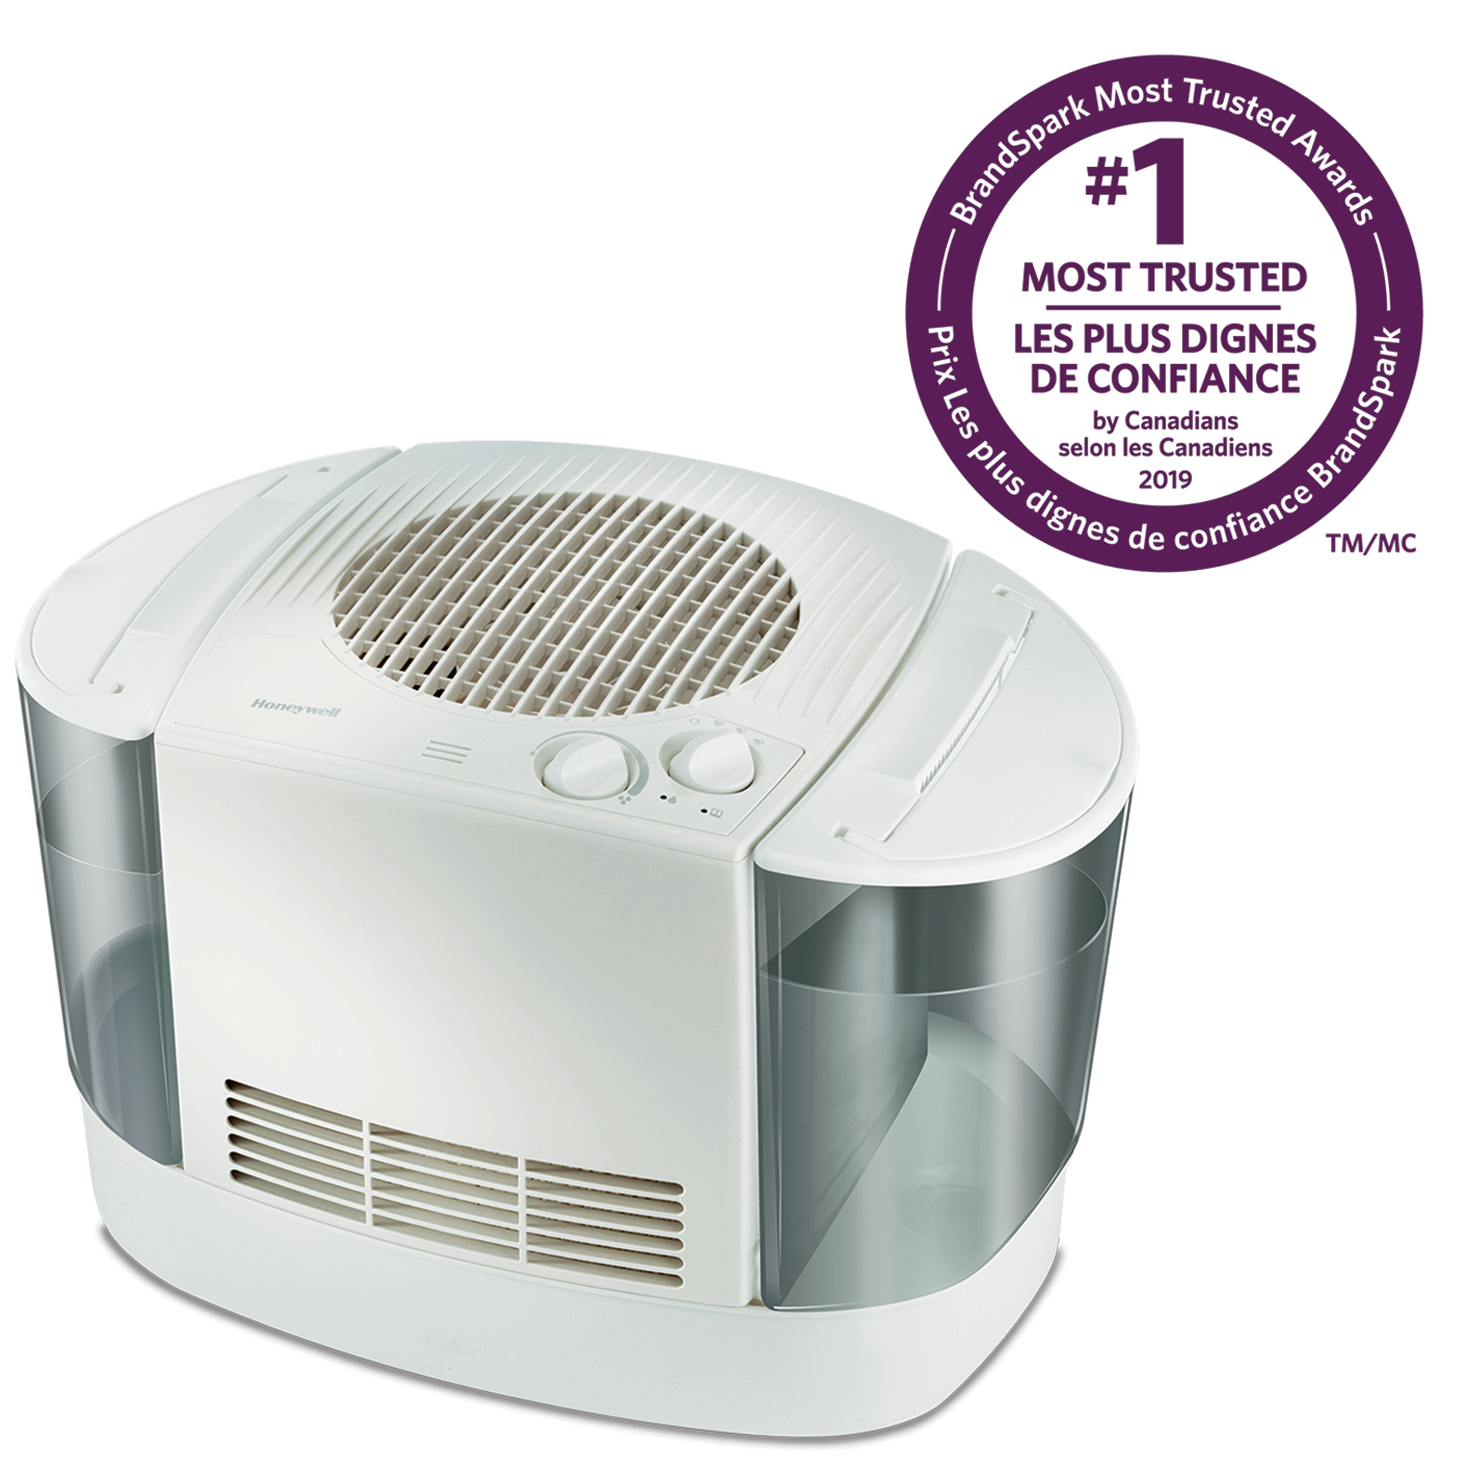 Honeywell HEV685WC Top Fill Console Humidifier